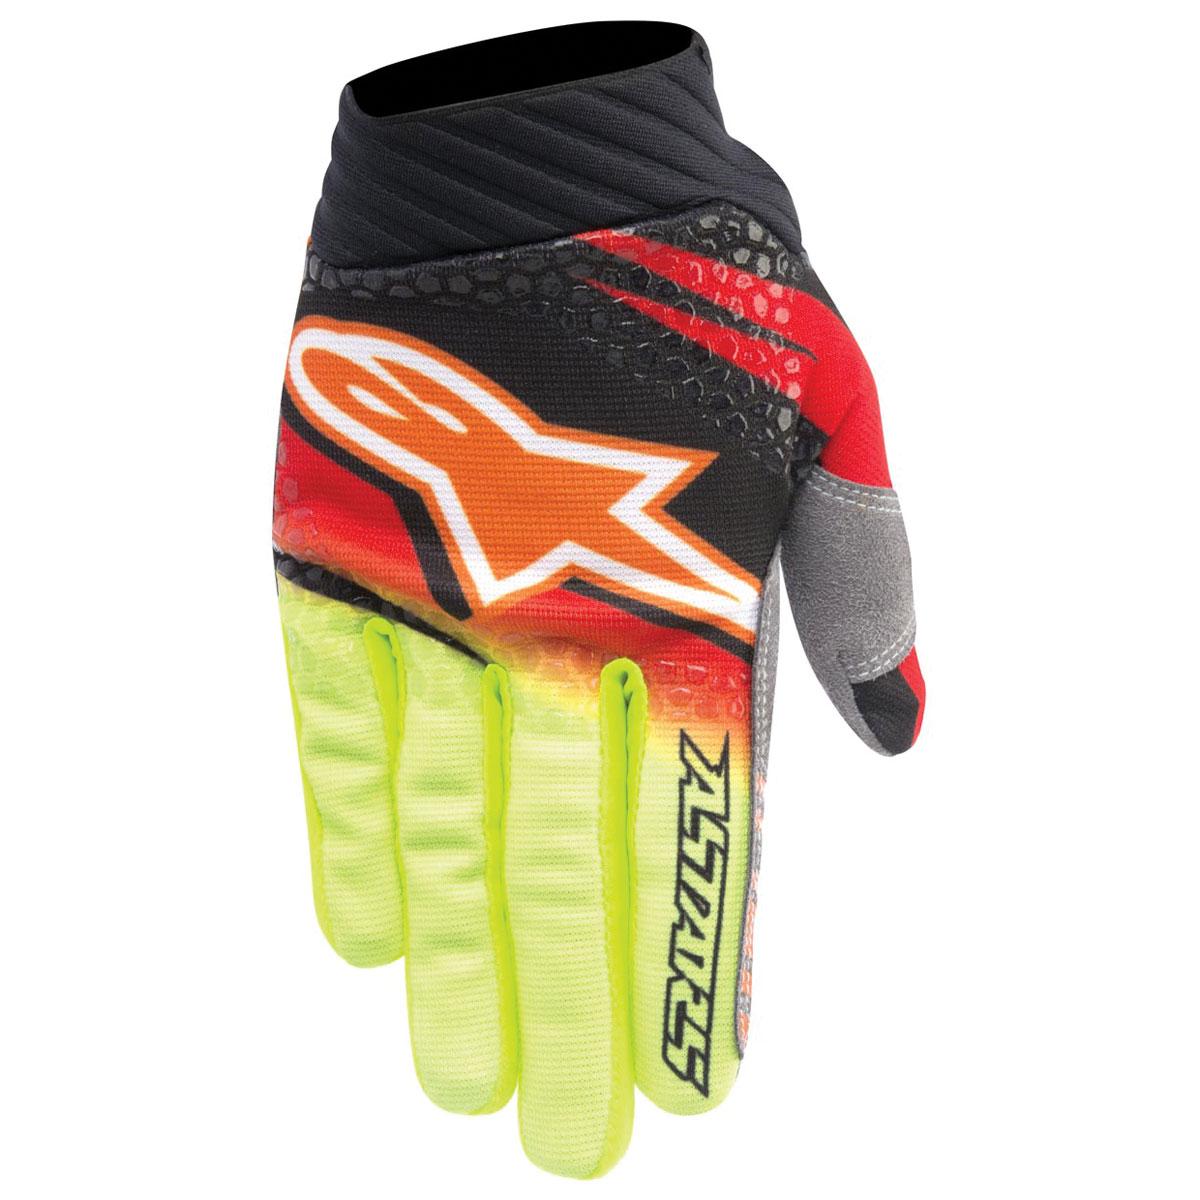 Alpinestars Men's Techstar Venom Red/Yellow Gloves